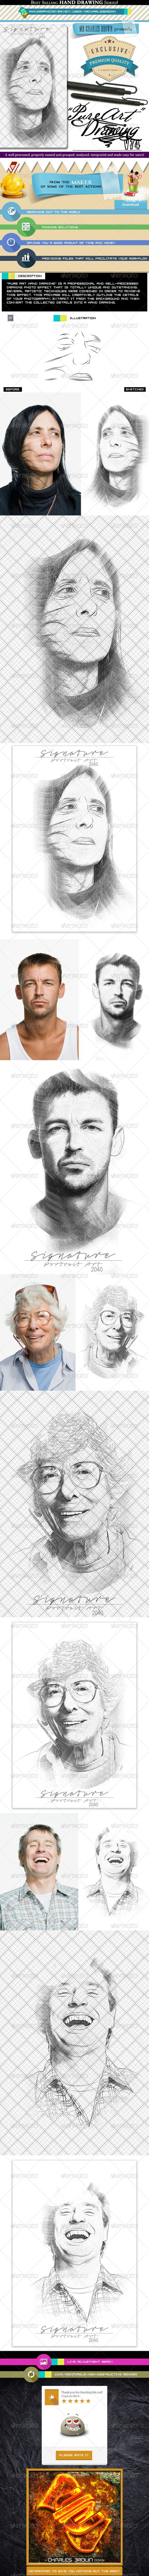 GraphicRiver Pure Art Hand Drawing 74 Portrait Art Drawing 1 7671697